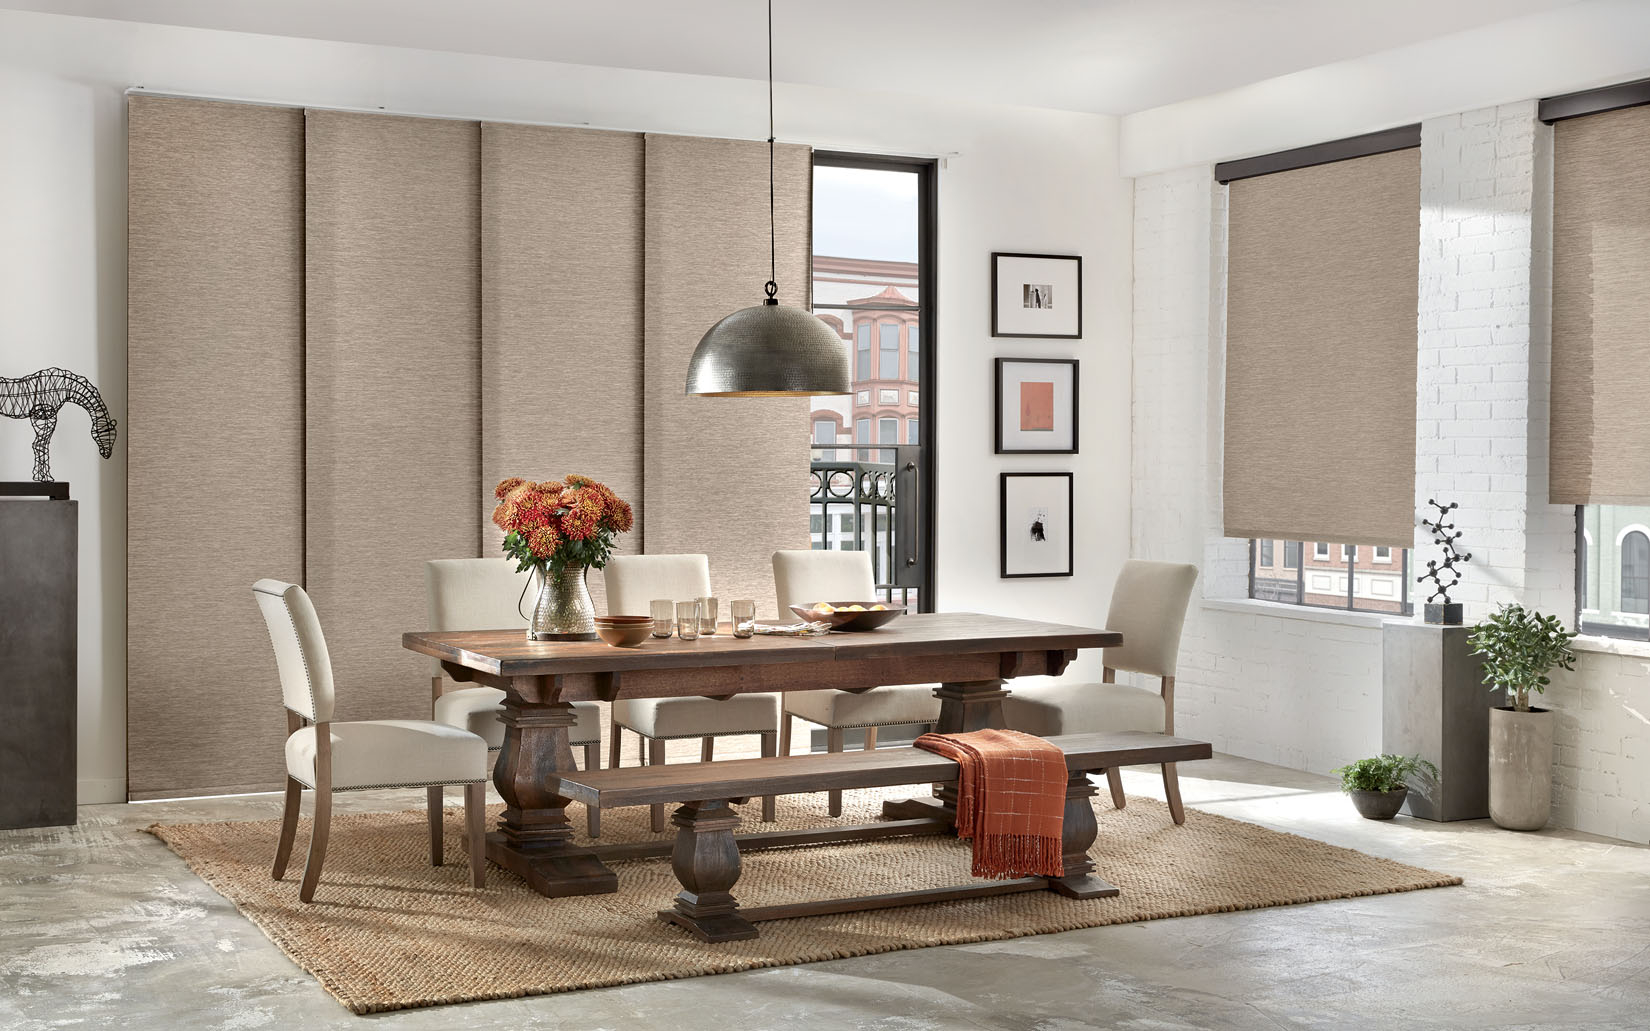 alta available in shade shpol blinds made pl thru the shutters deluxetrim are white com blindsofnorcal kit